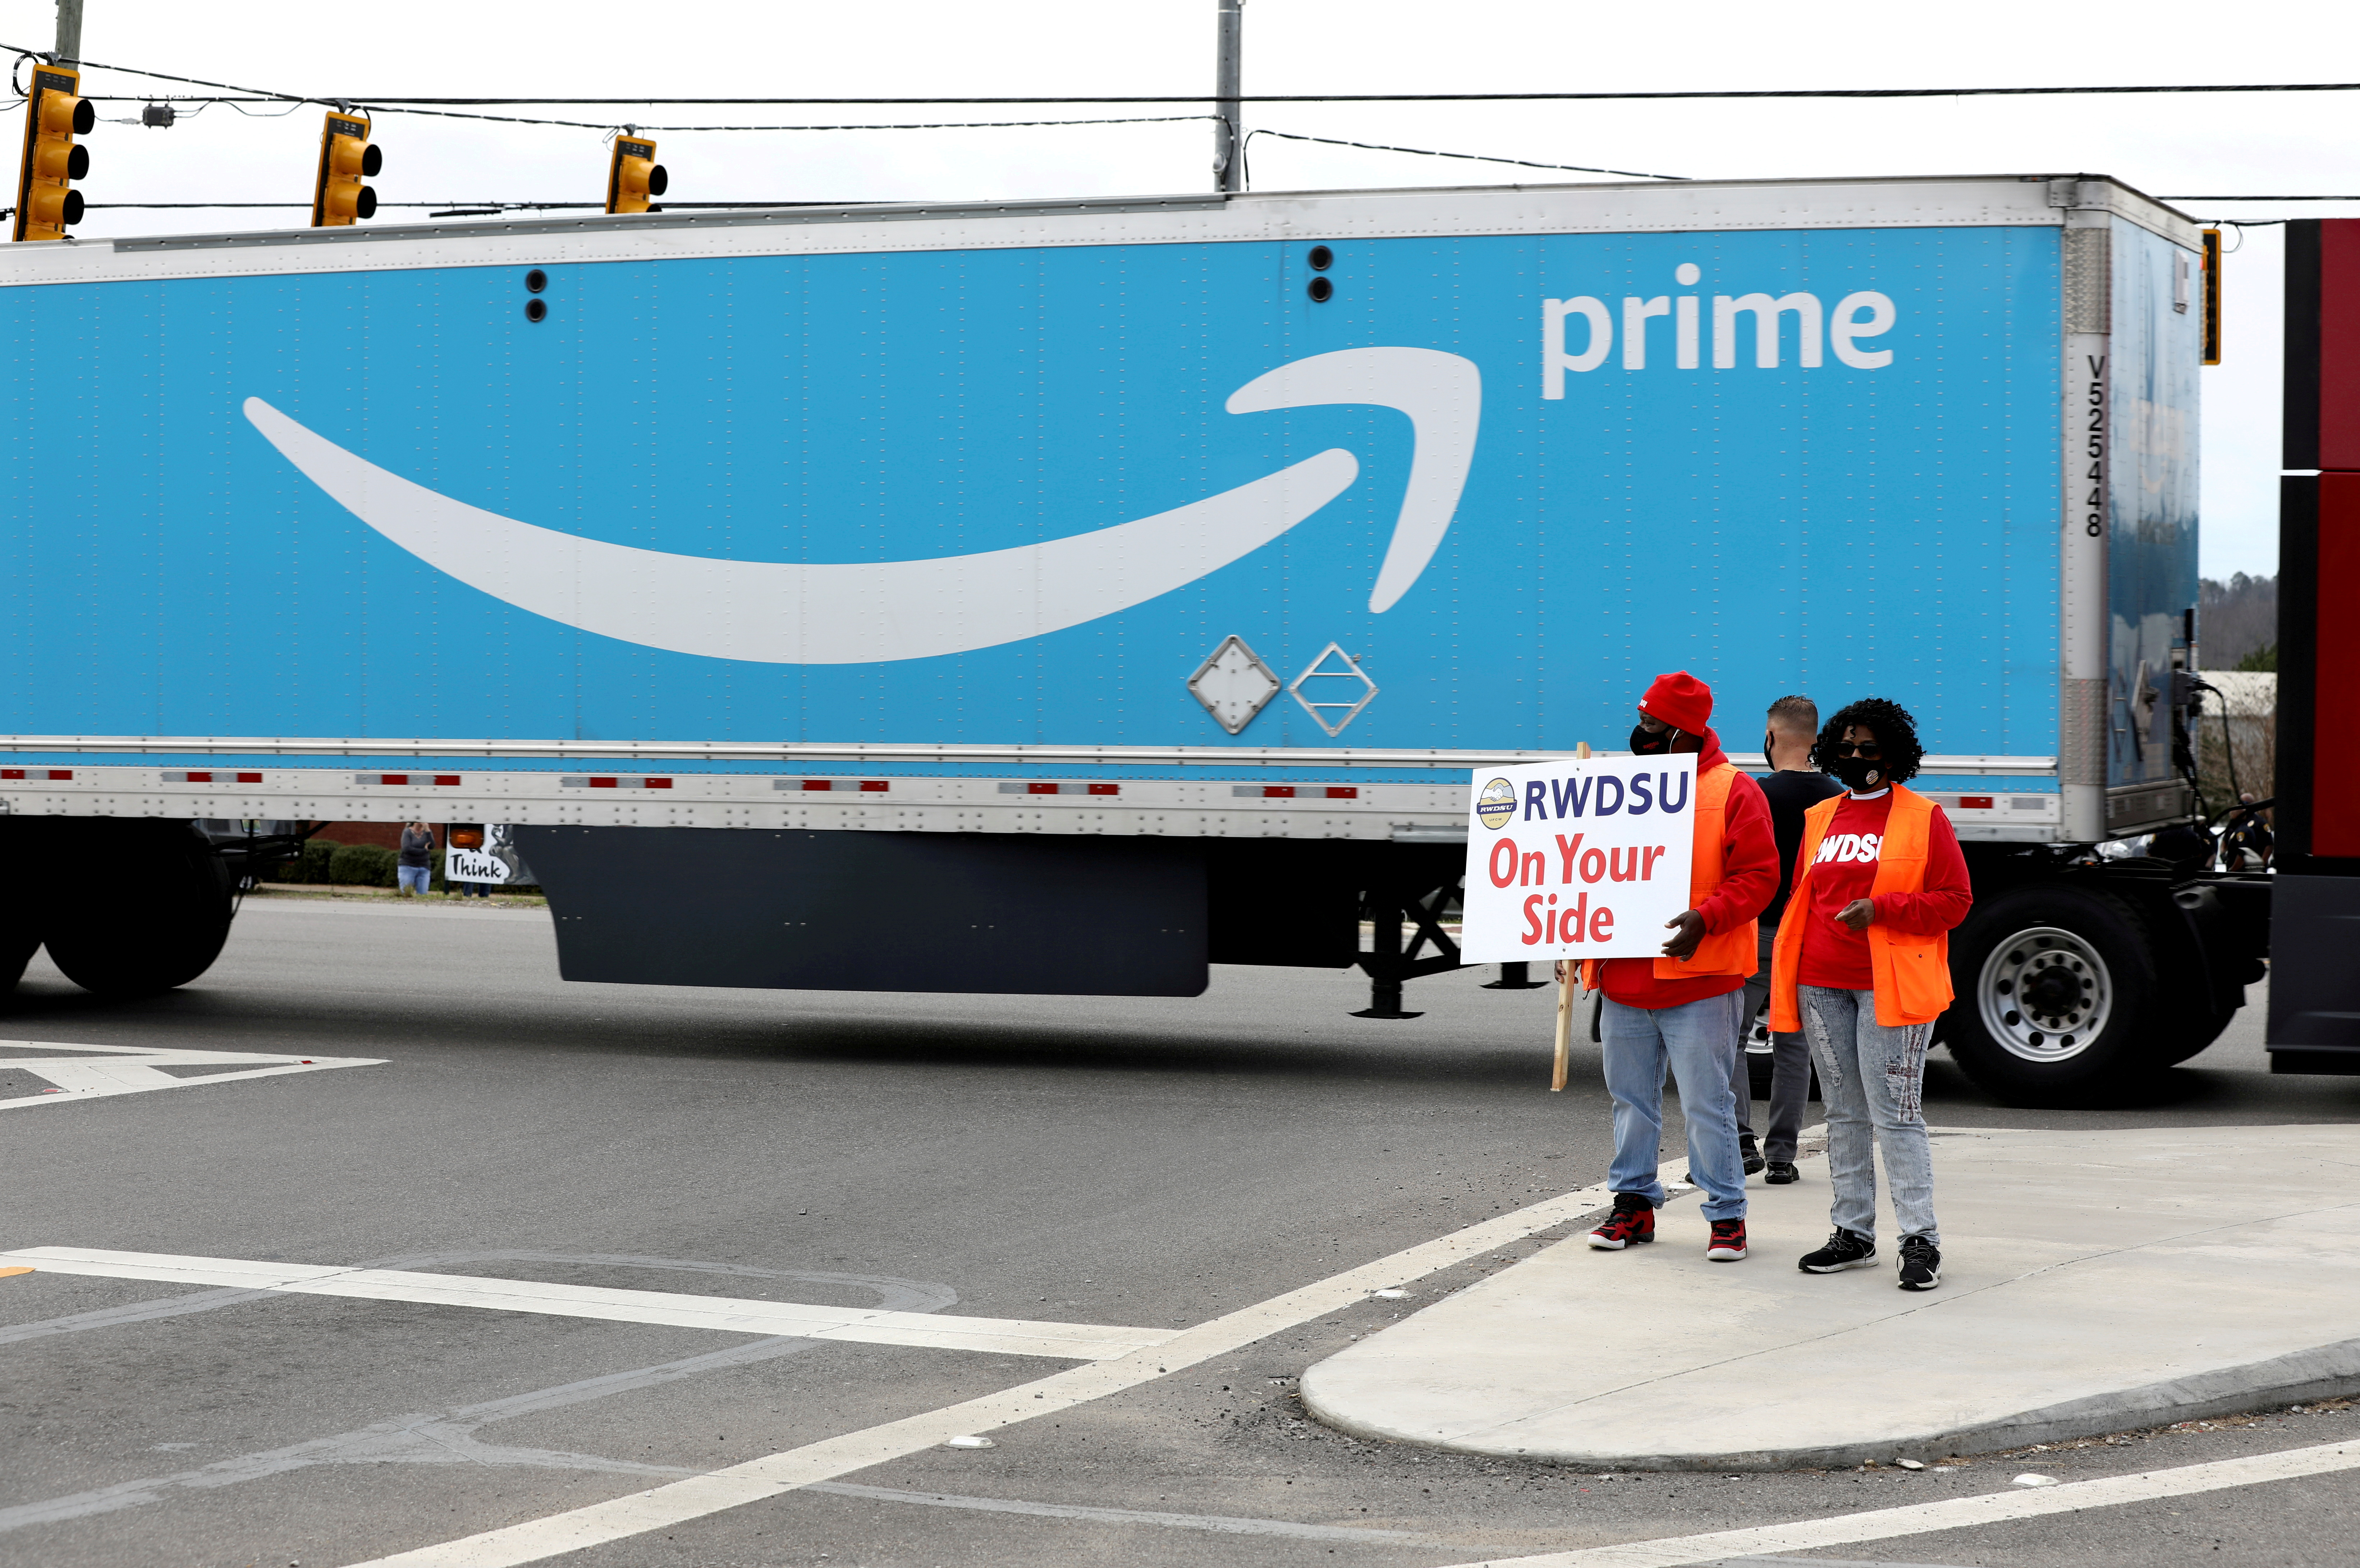 People hold a banner at the Amazon facility as members of a congressional delegation arrive to show their support for workers who will vote on whether to unionize, in Bessemer, Alabama, U.S. March 5, 2021.  REUTERS/Dustin Chambers